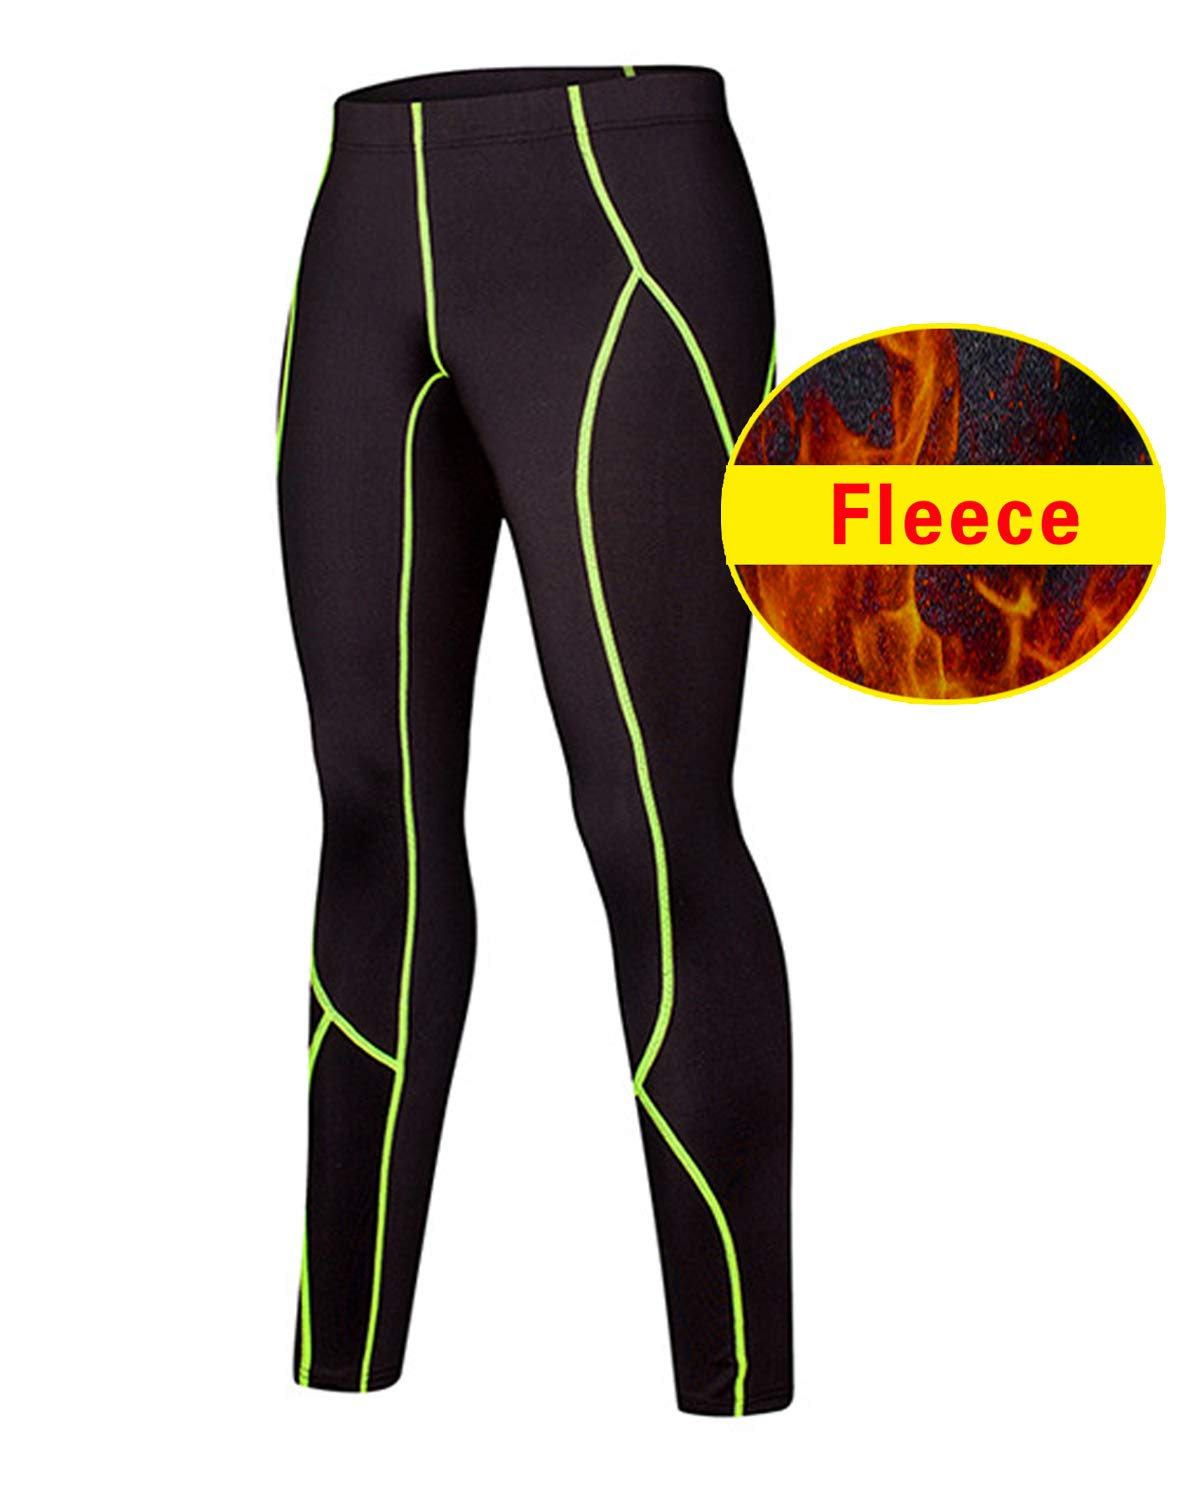 f7140326937c1 Amazon.com : LNJLVI Boys & Girls Compression Pants Sports Base Layer  Legging/Tights : Sports & Outdoors